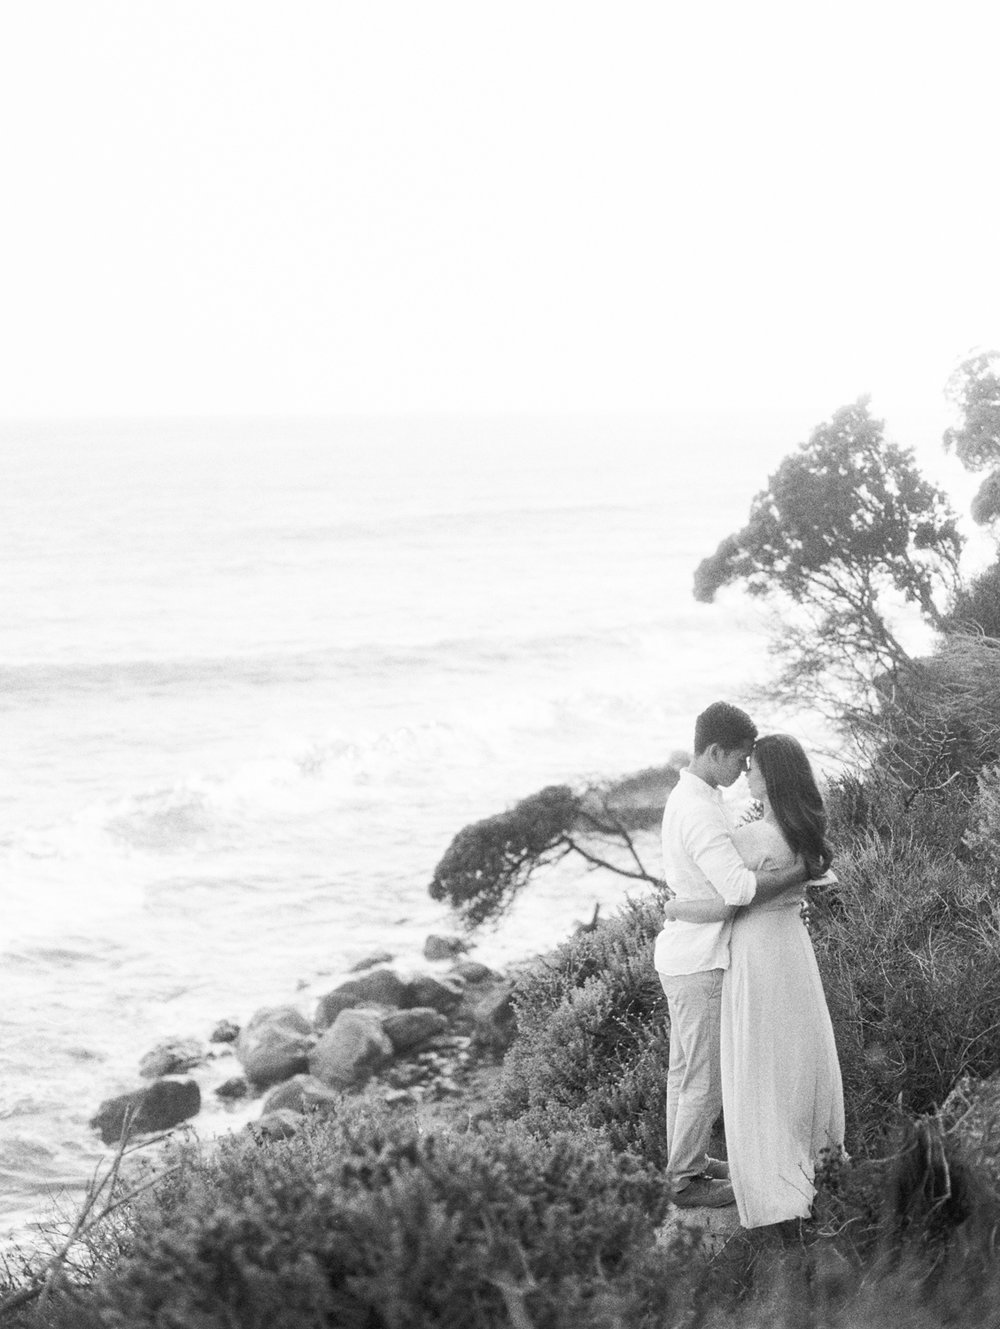 Jon Cu83002651-R1-E002California-Engagement-Malibu-Film-Wedding-Orange-County-Los-Angeles-bride-groom.jpg